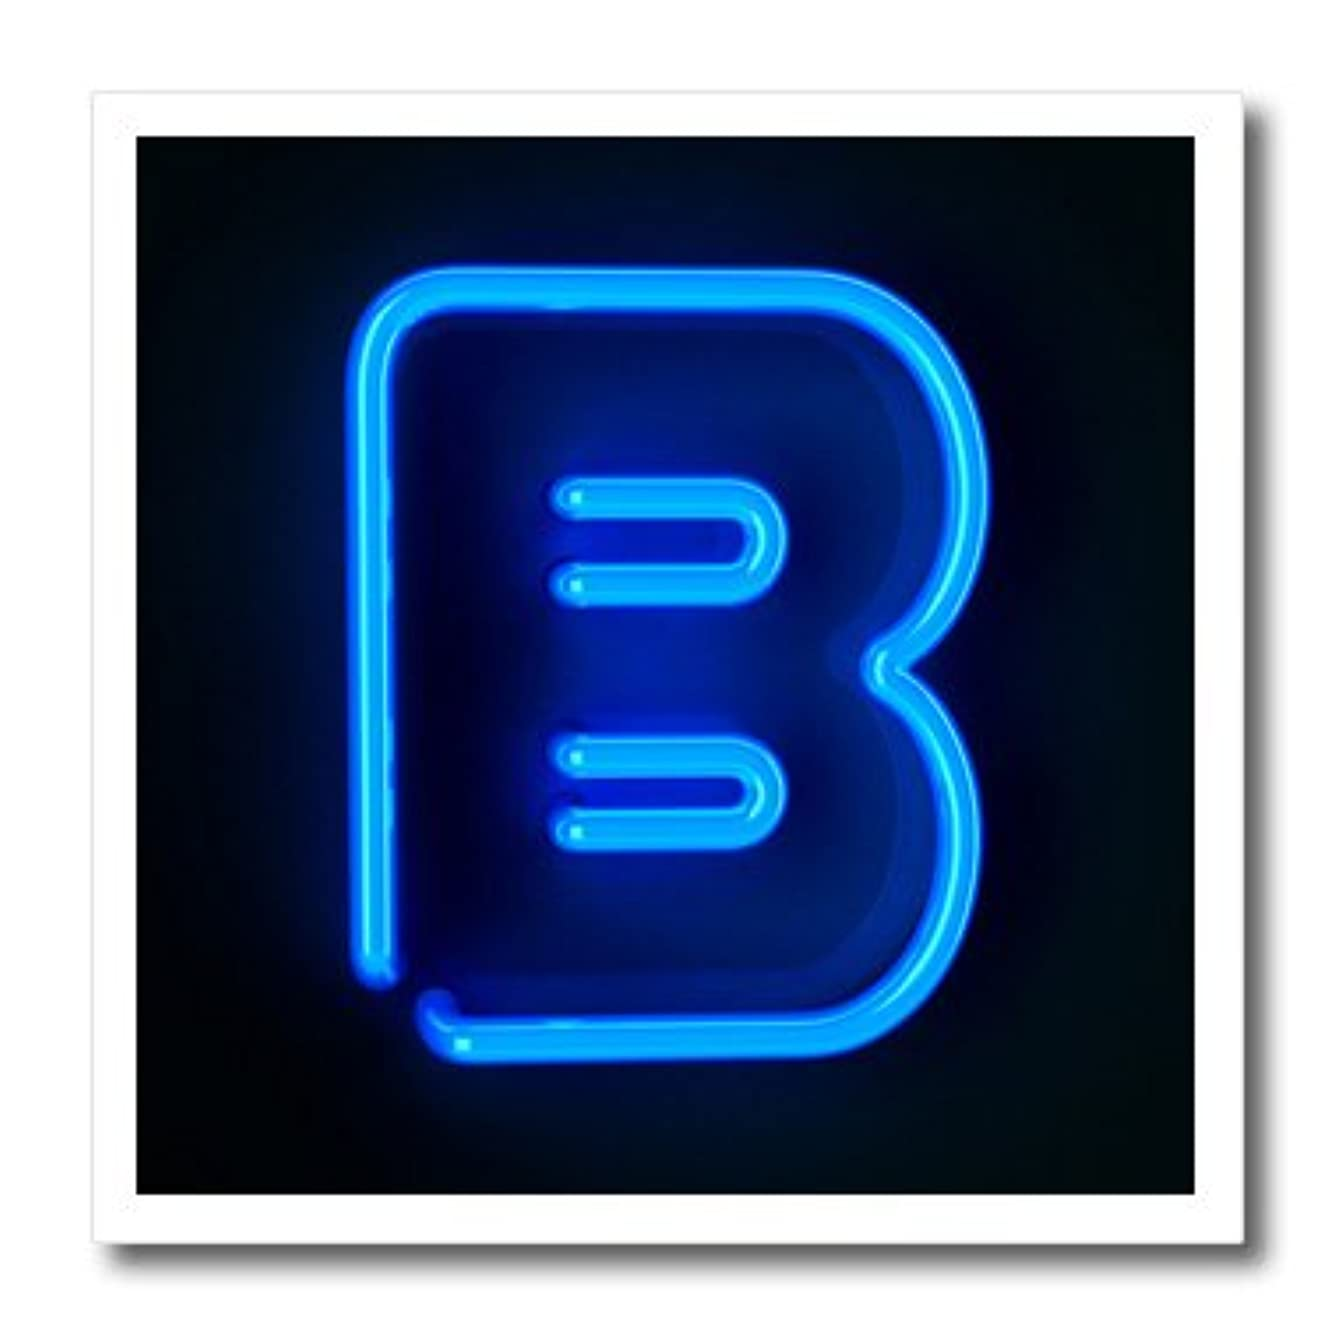 3dRose ht_155122_3 Monogram Letter B Abstract Neon Blue Lit Shining Illuminated Iron on Heat Transfer Paper for White Material, 10 by 10-Inch